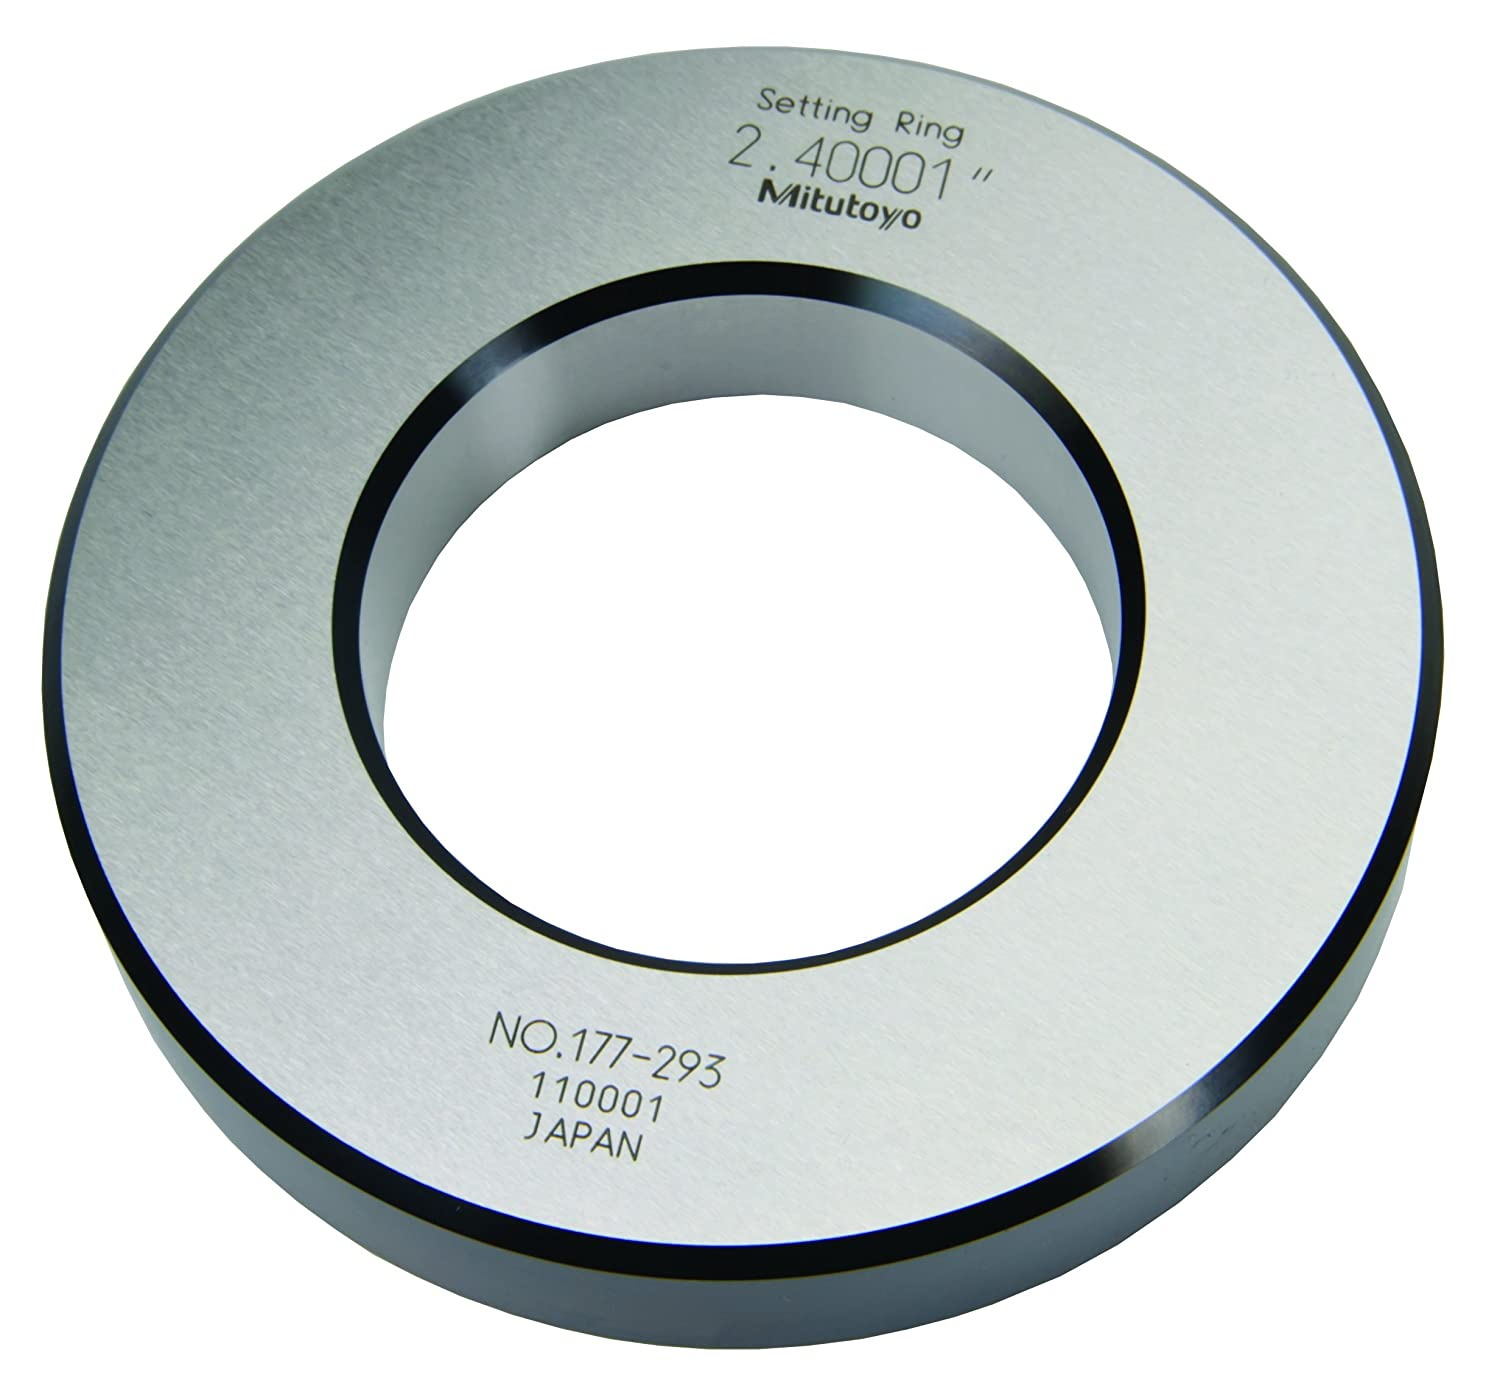 Mitutoyo 177-293 Setting Ring, 2.4' Size, 0.79' Width, 4.41' Outside Diameter, +/-0.00004' Accuracy 2.4 Size 0.79 Width 4.41 Outside Diameter +/-0.00004 Accuracy